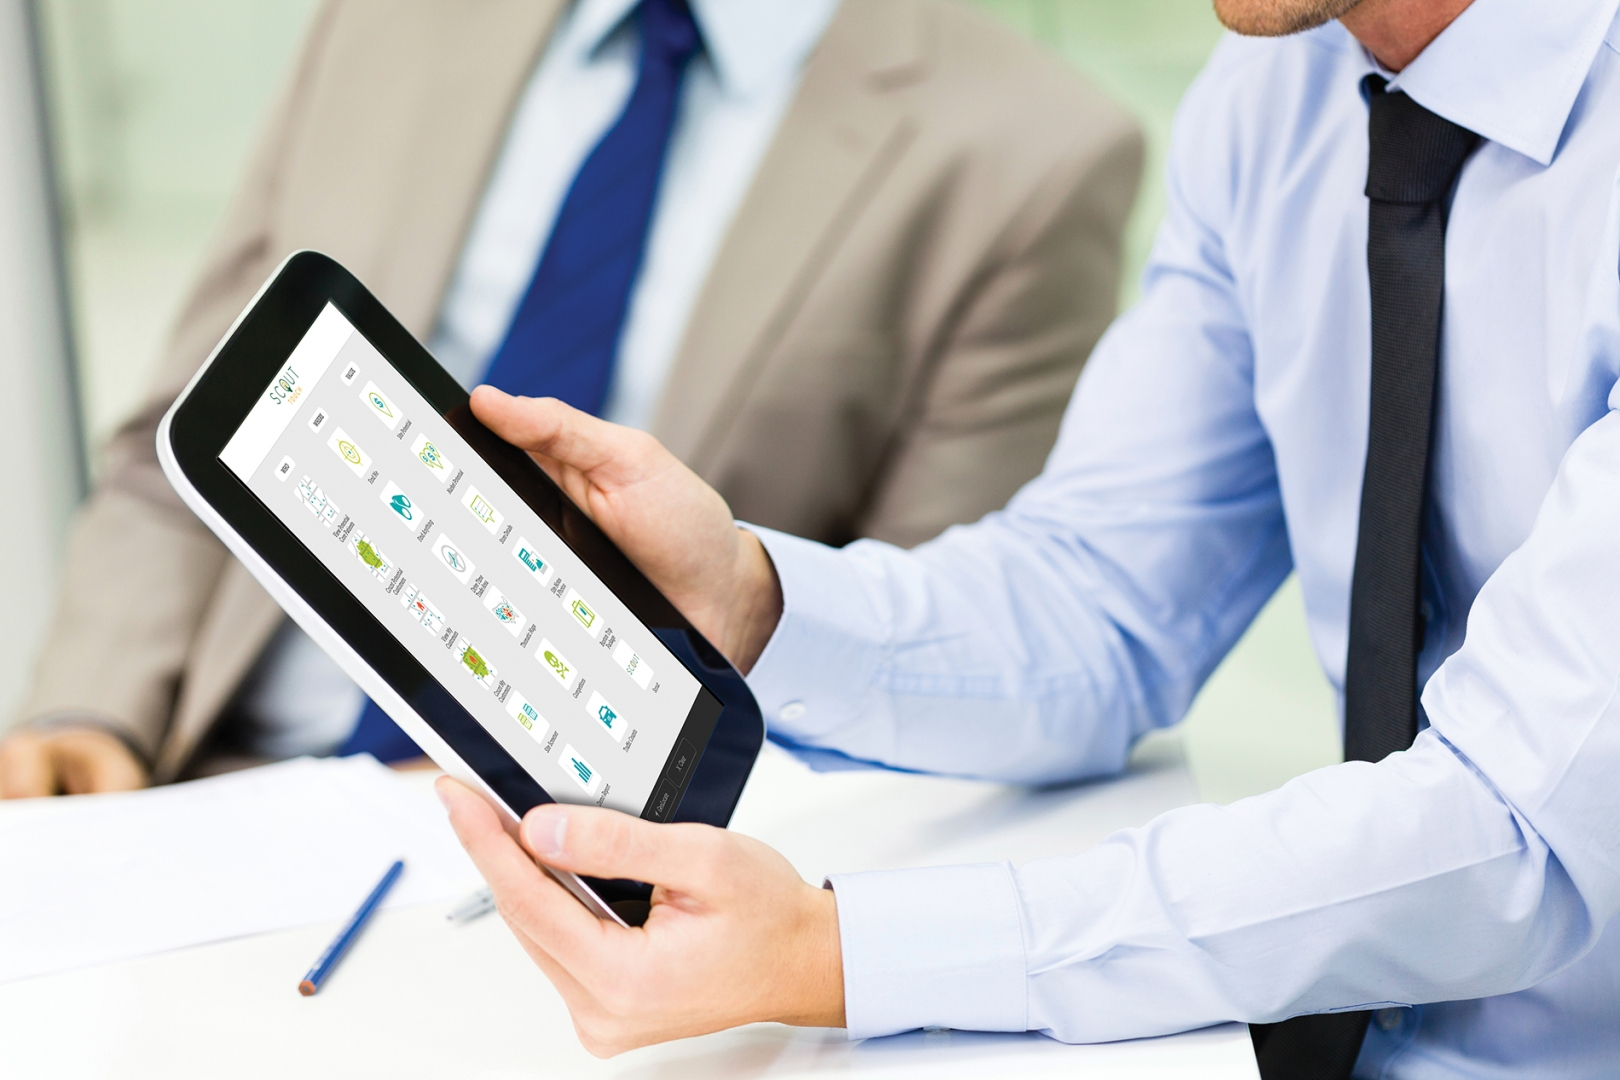 business person showing colleague something on a tablet screen